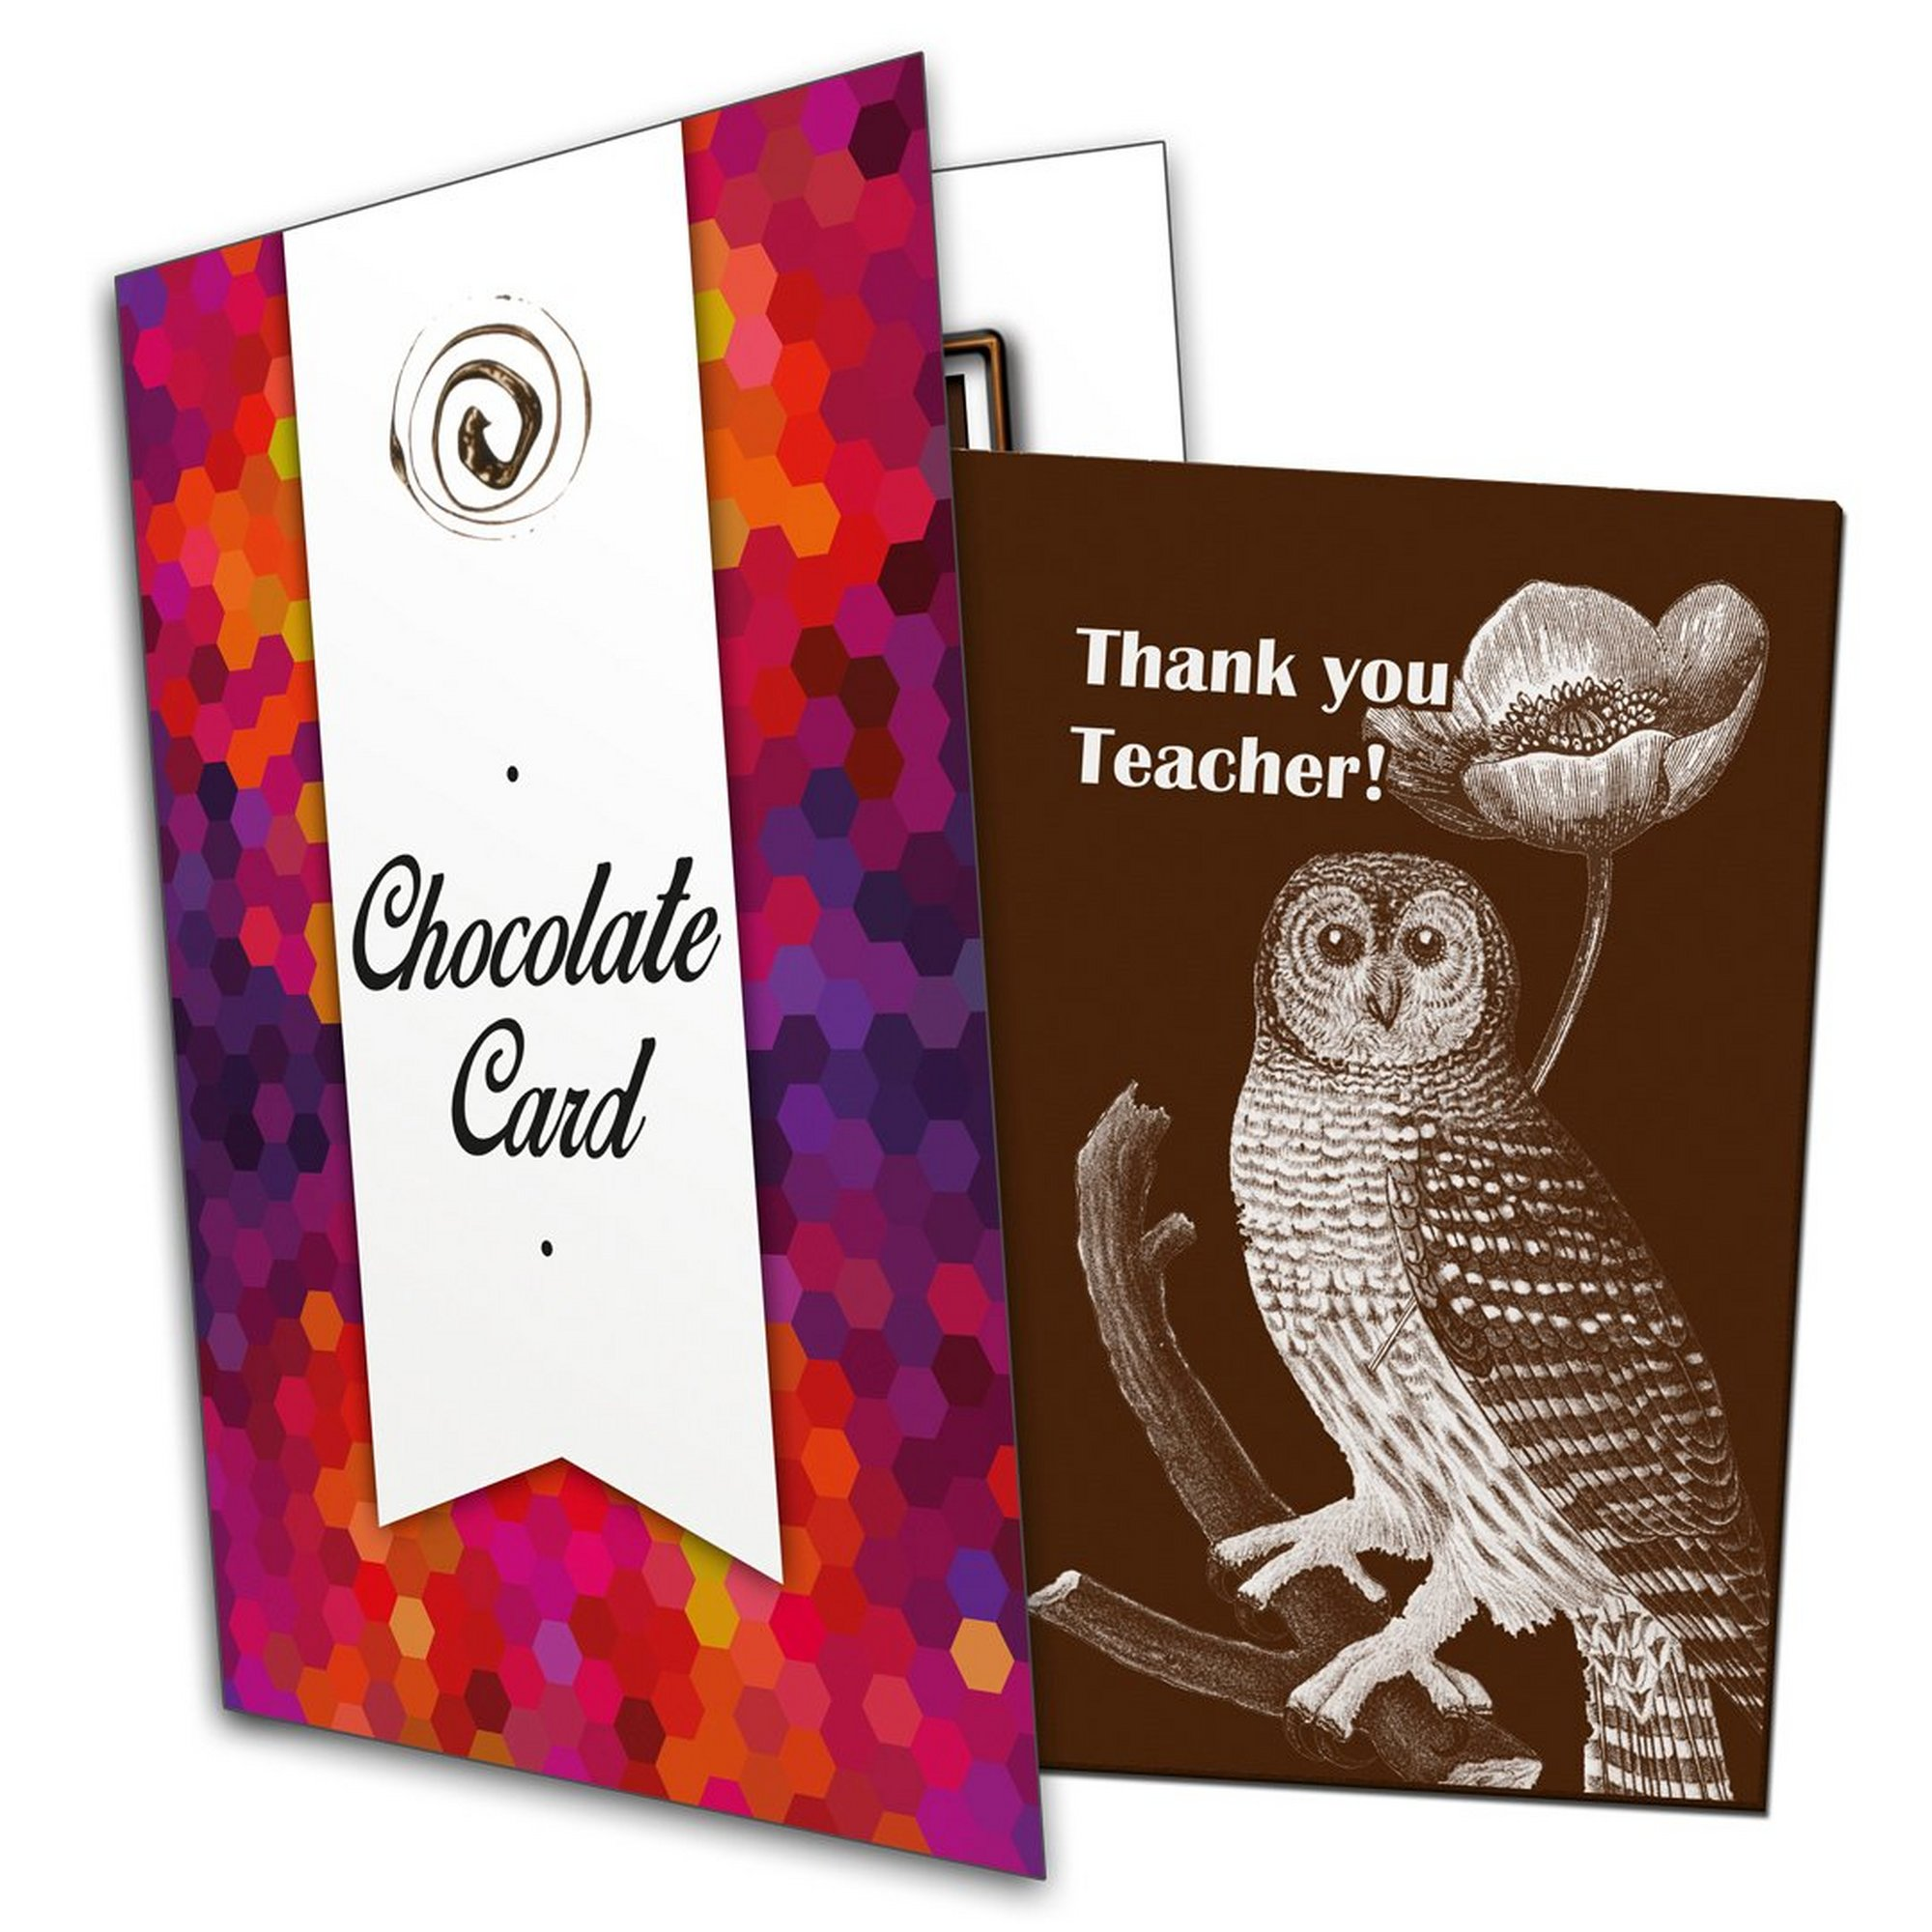 Image of Thank You Teacher Chocolate Card